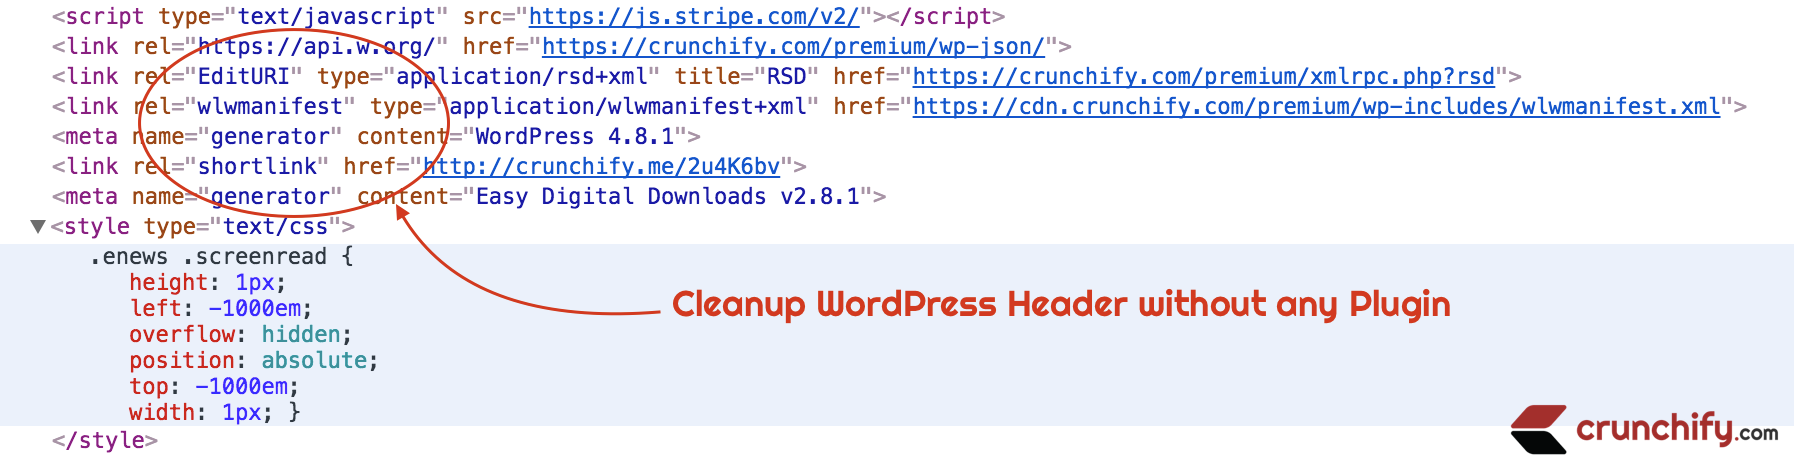 How to Clean up WordPress Header Section without any Plugin